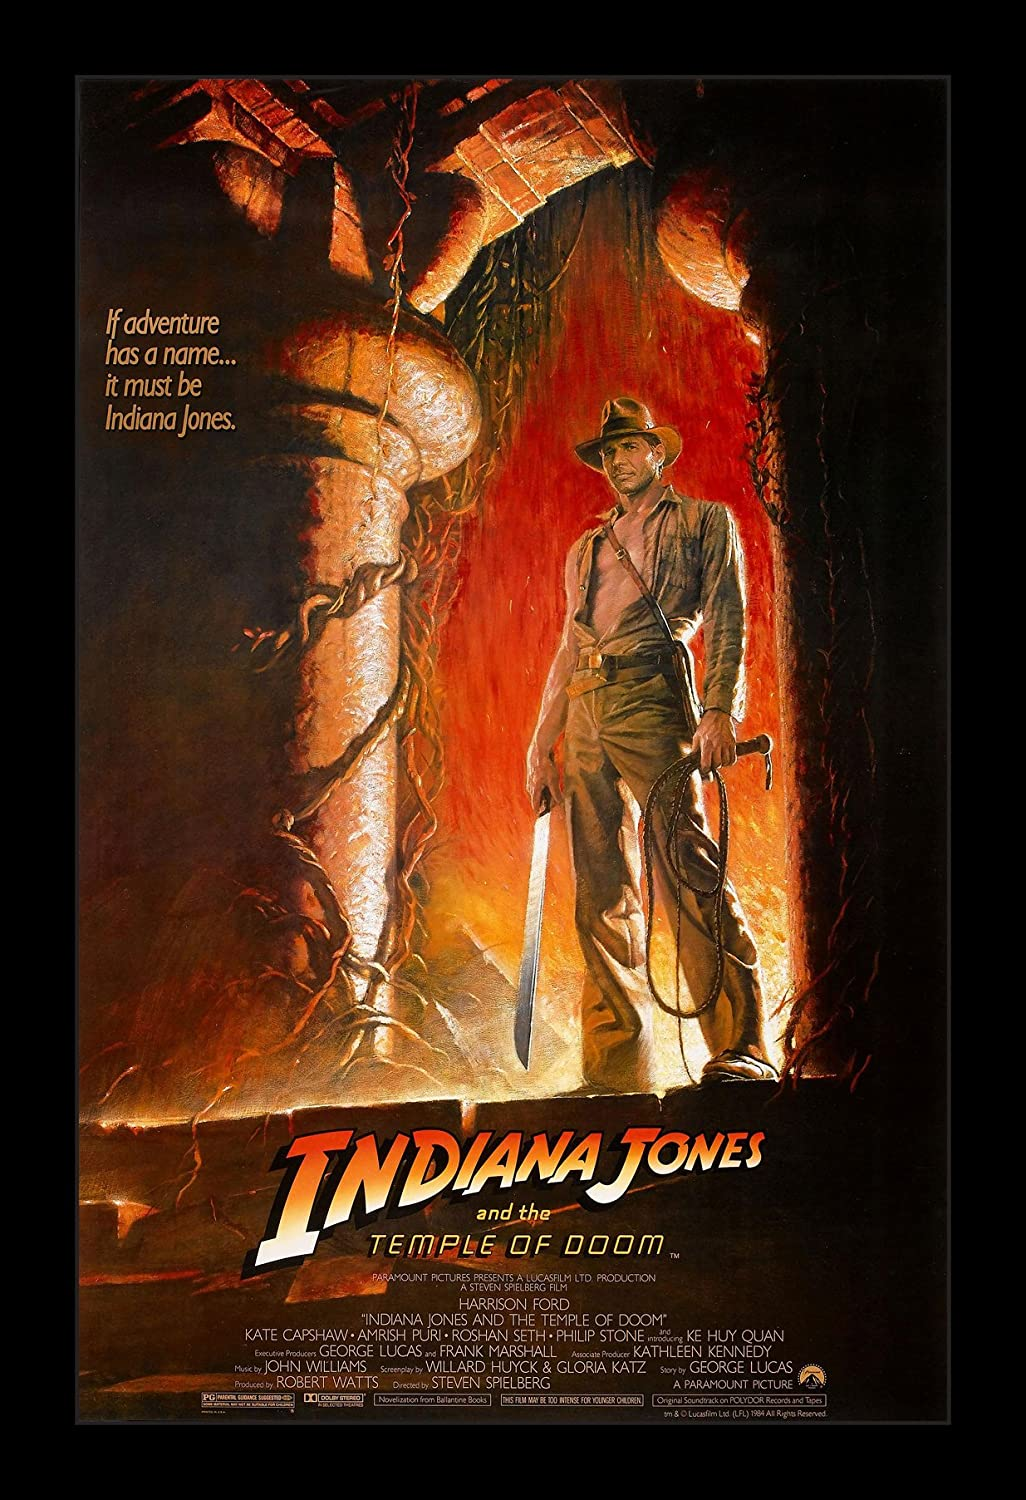 Indiana Jones and the Temple of Doom - 11x17 Framed Movie Poster by Wallspace